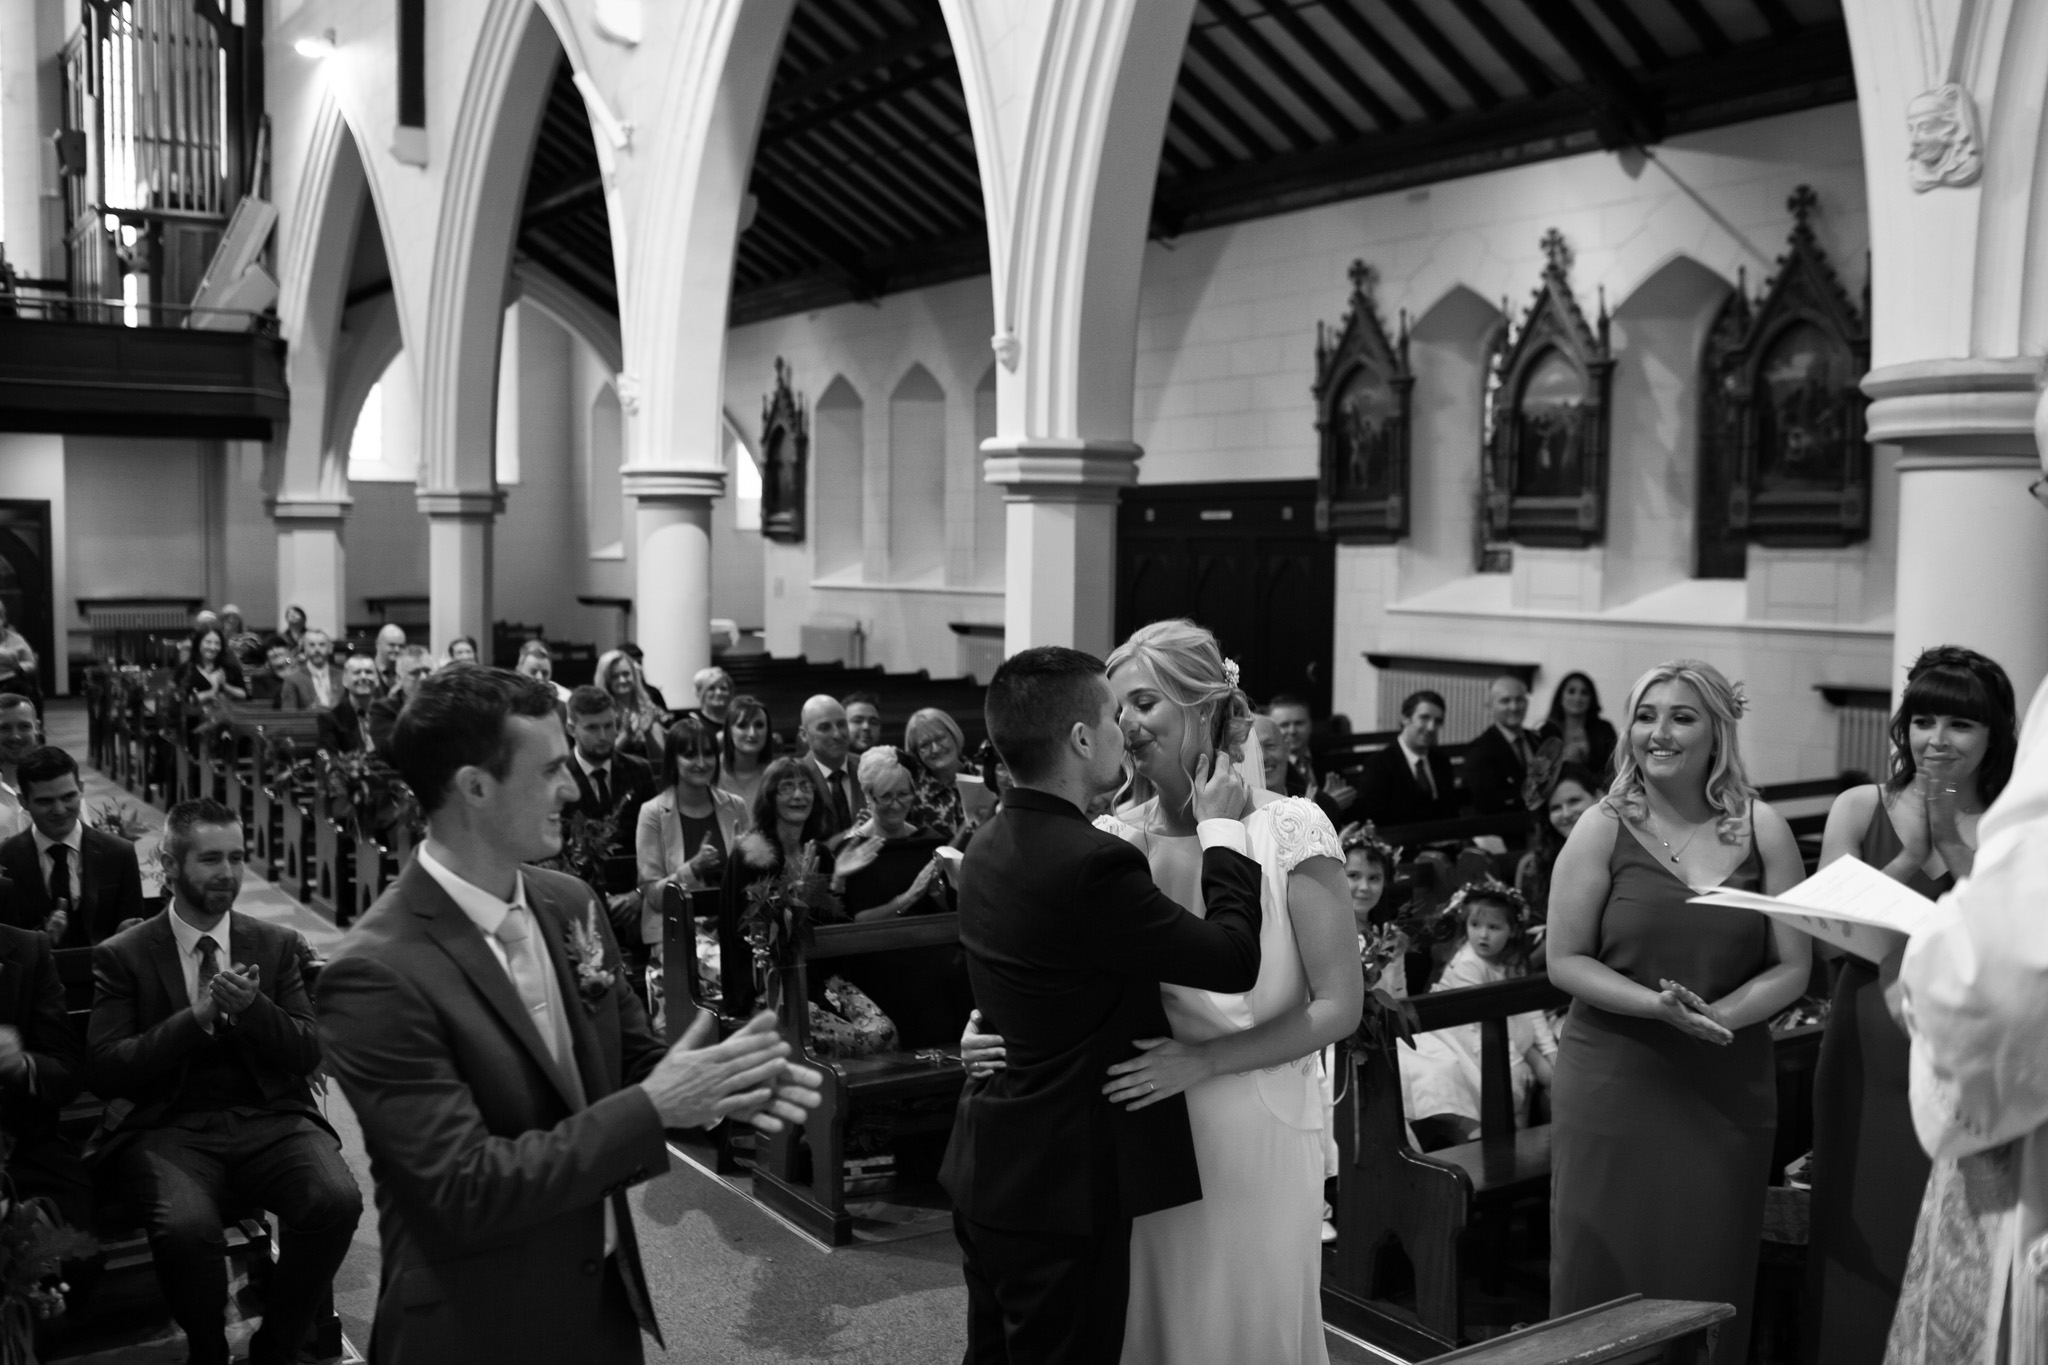 Mark_Barnes_Northern_Ireland_Wedding_Photography_Ballyscullion_Park_Wedding_Photography_Stef&Bobby-21.jpg